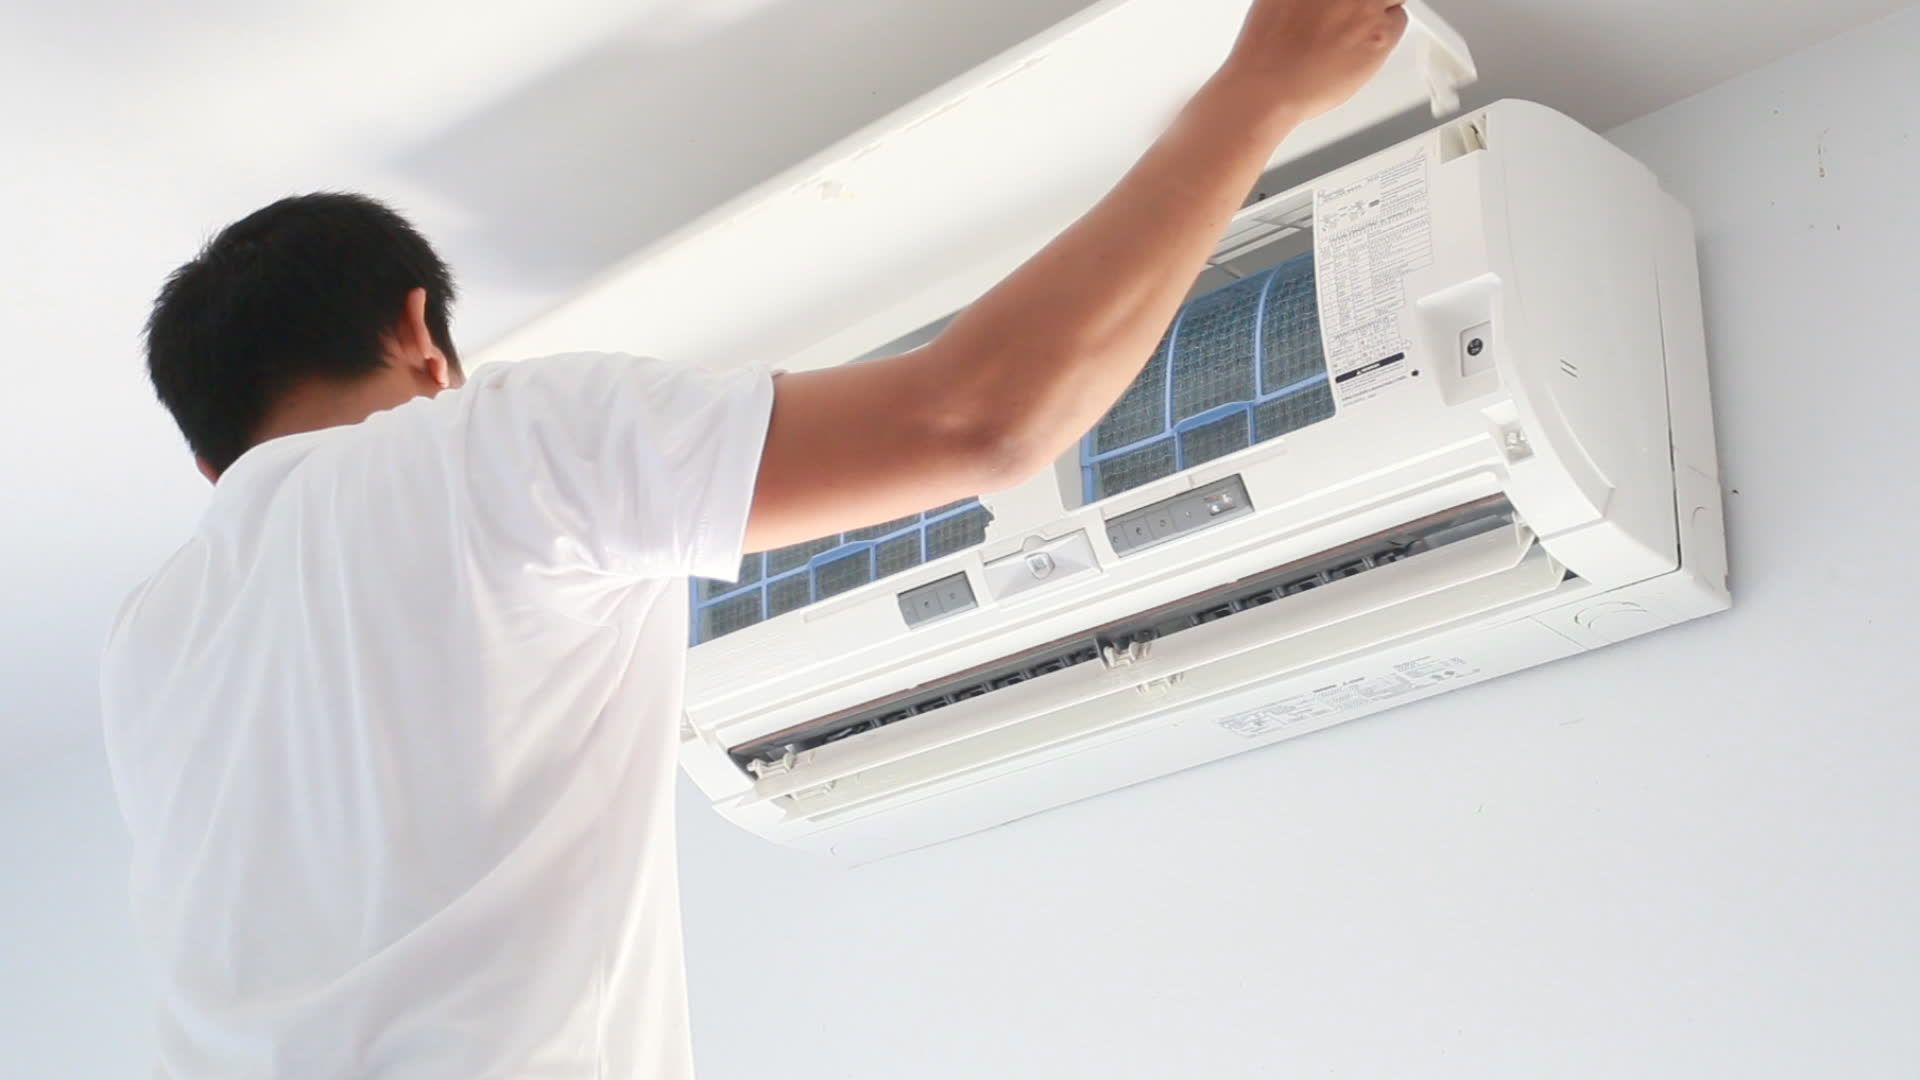 How Can I Find The Best Ac Repair Services?